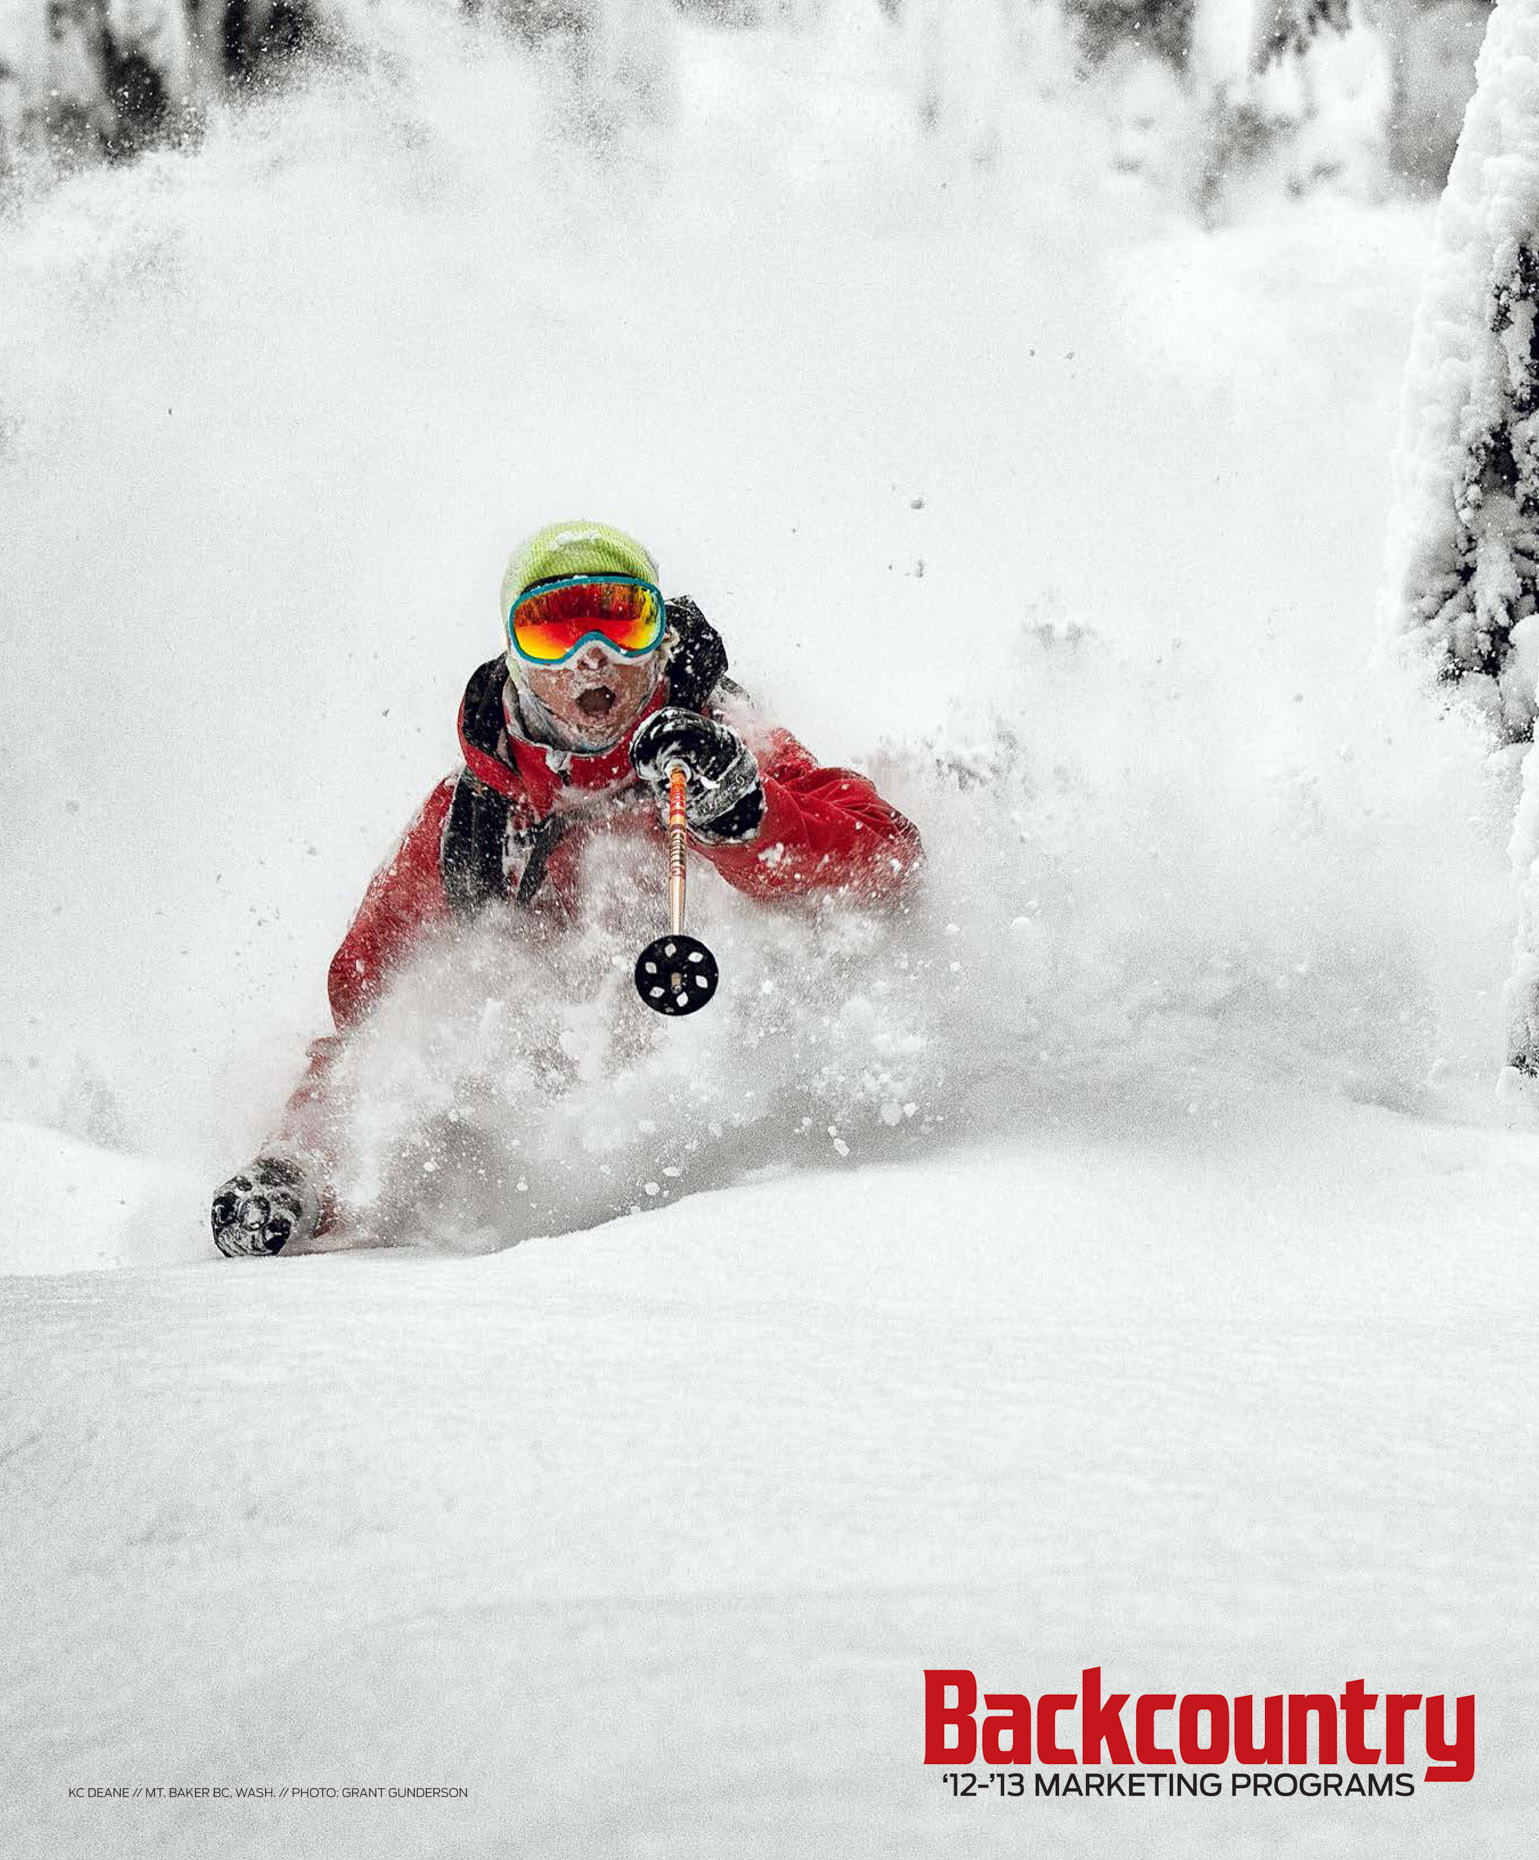 Backcountry_2012_MediaKit